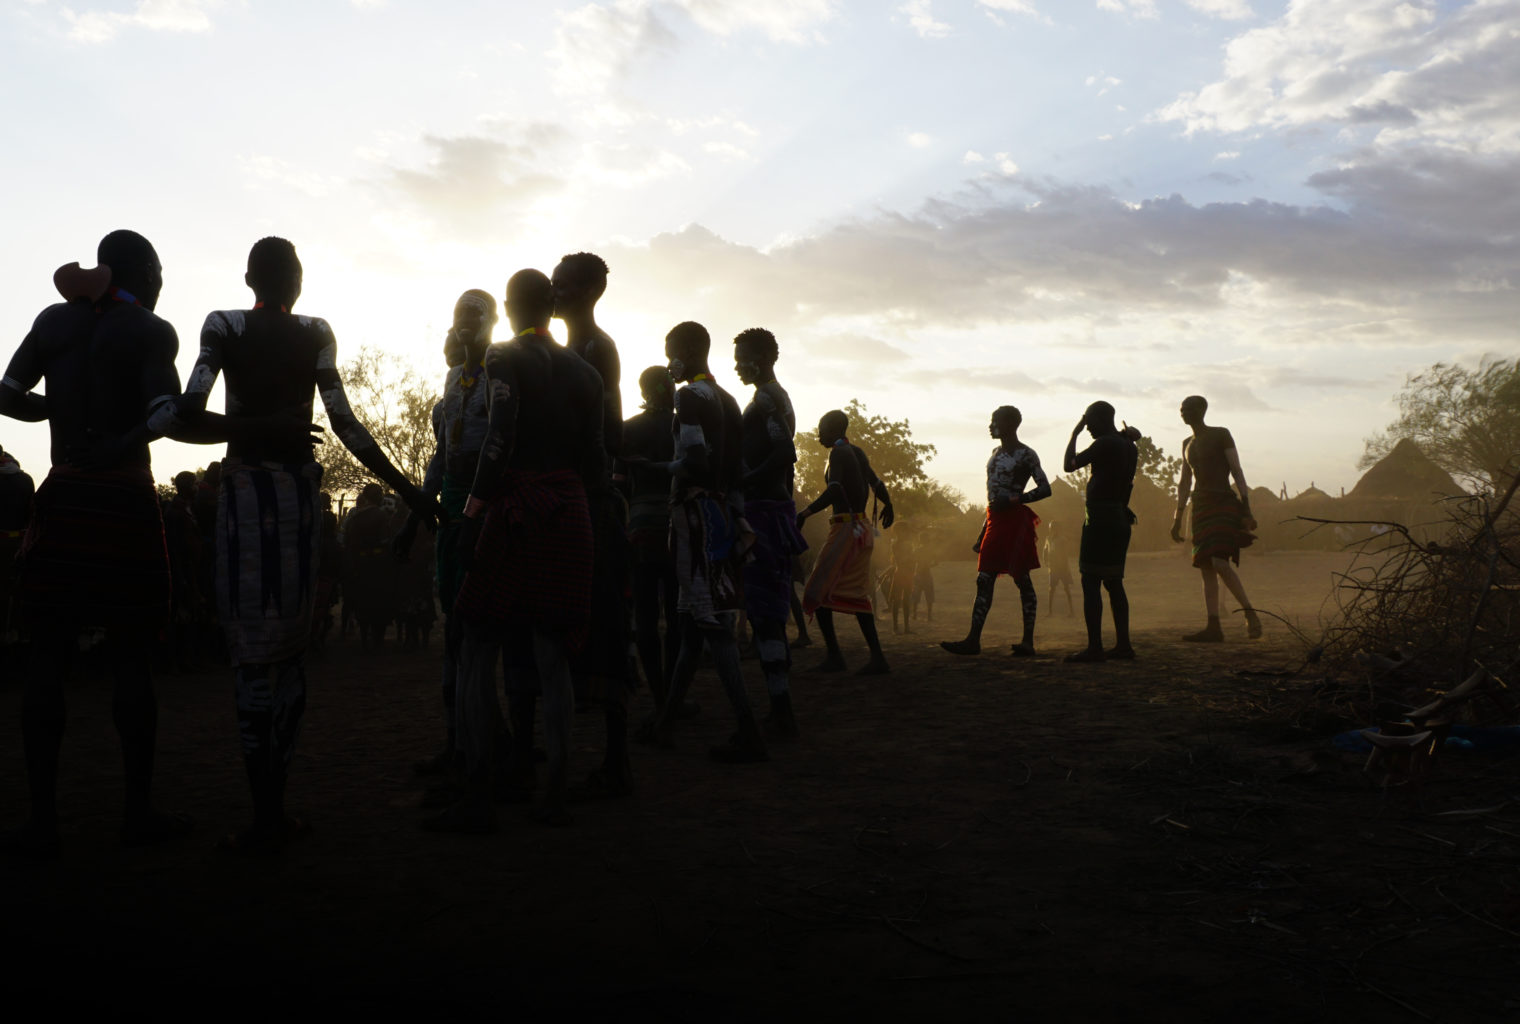 Kara dancing in the Omo Valley by Will Jones